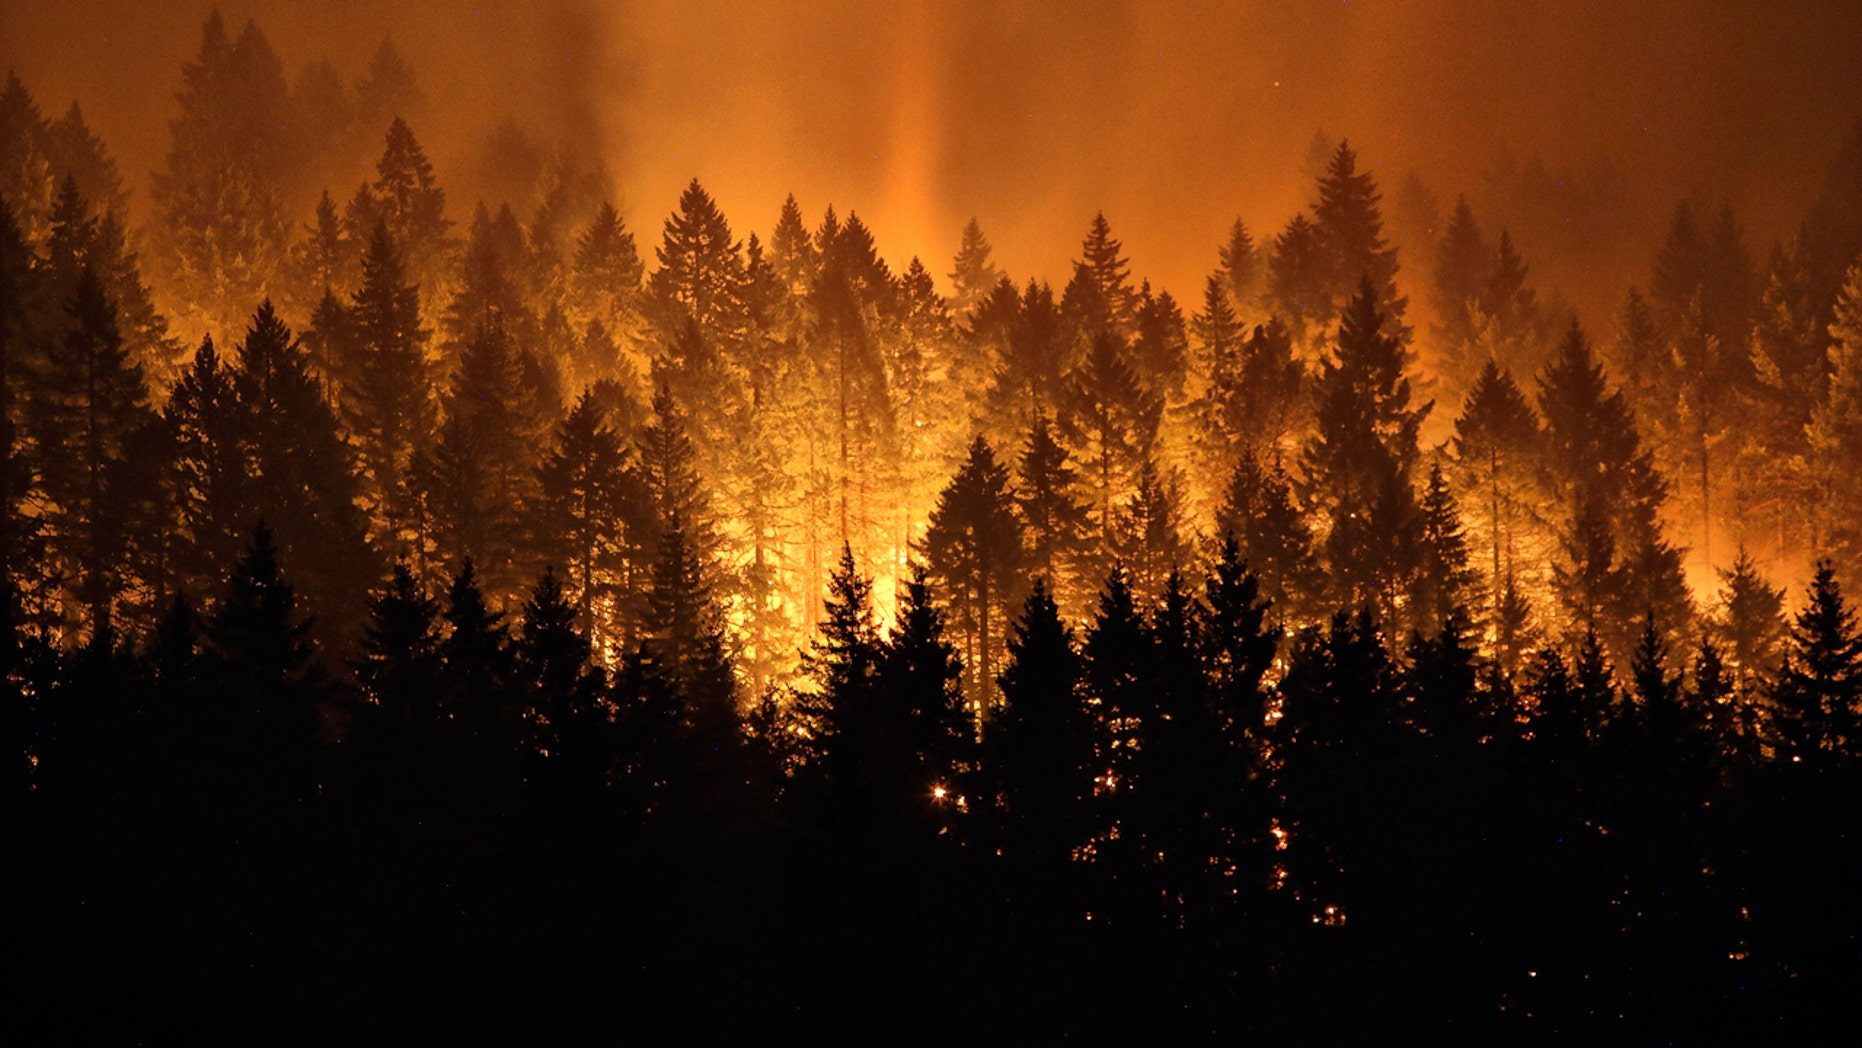 The Eagle Creek wildfire burned 75 square miles in September 2017.